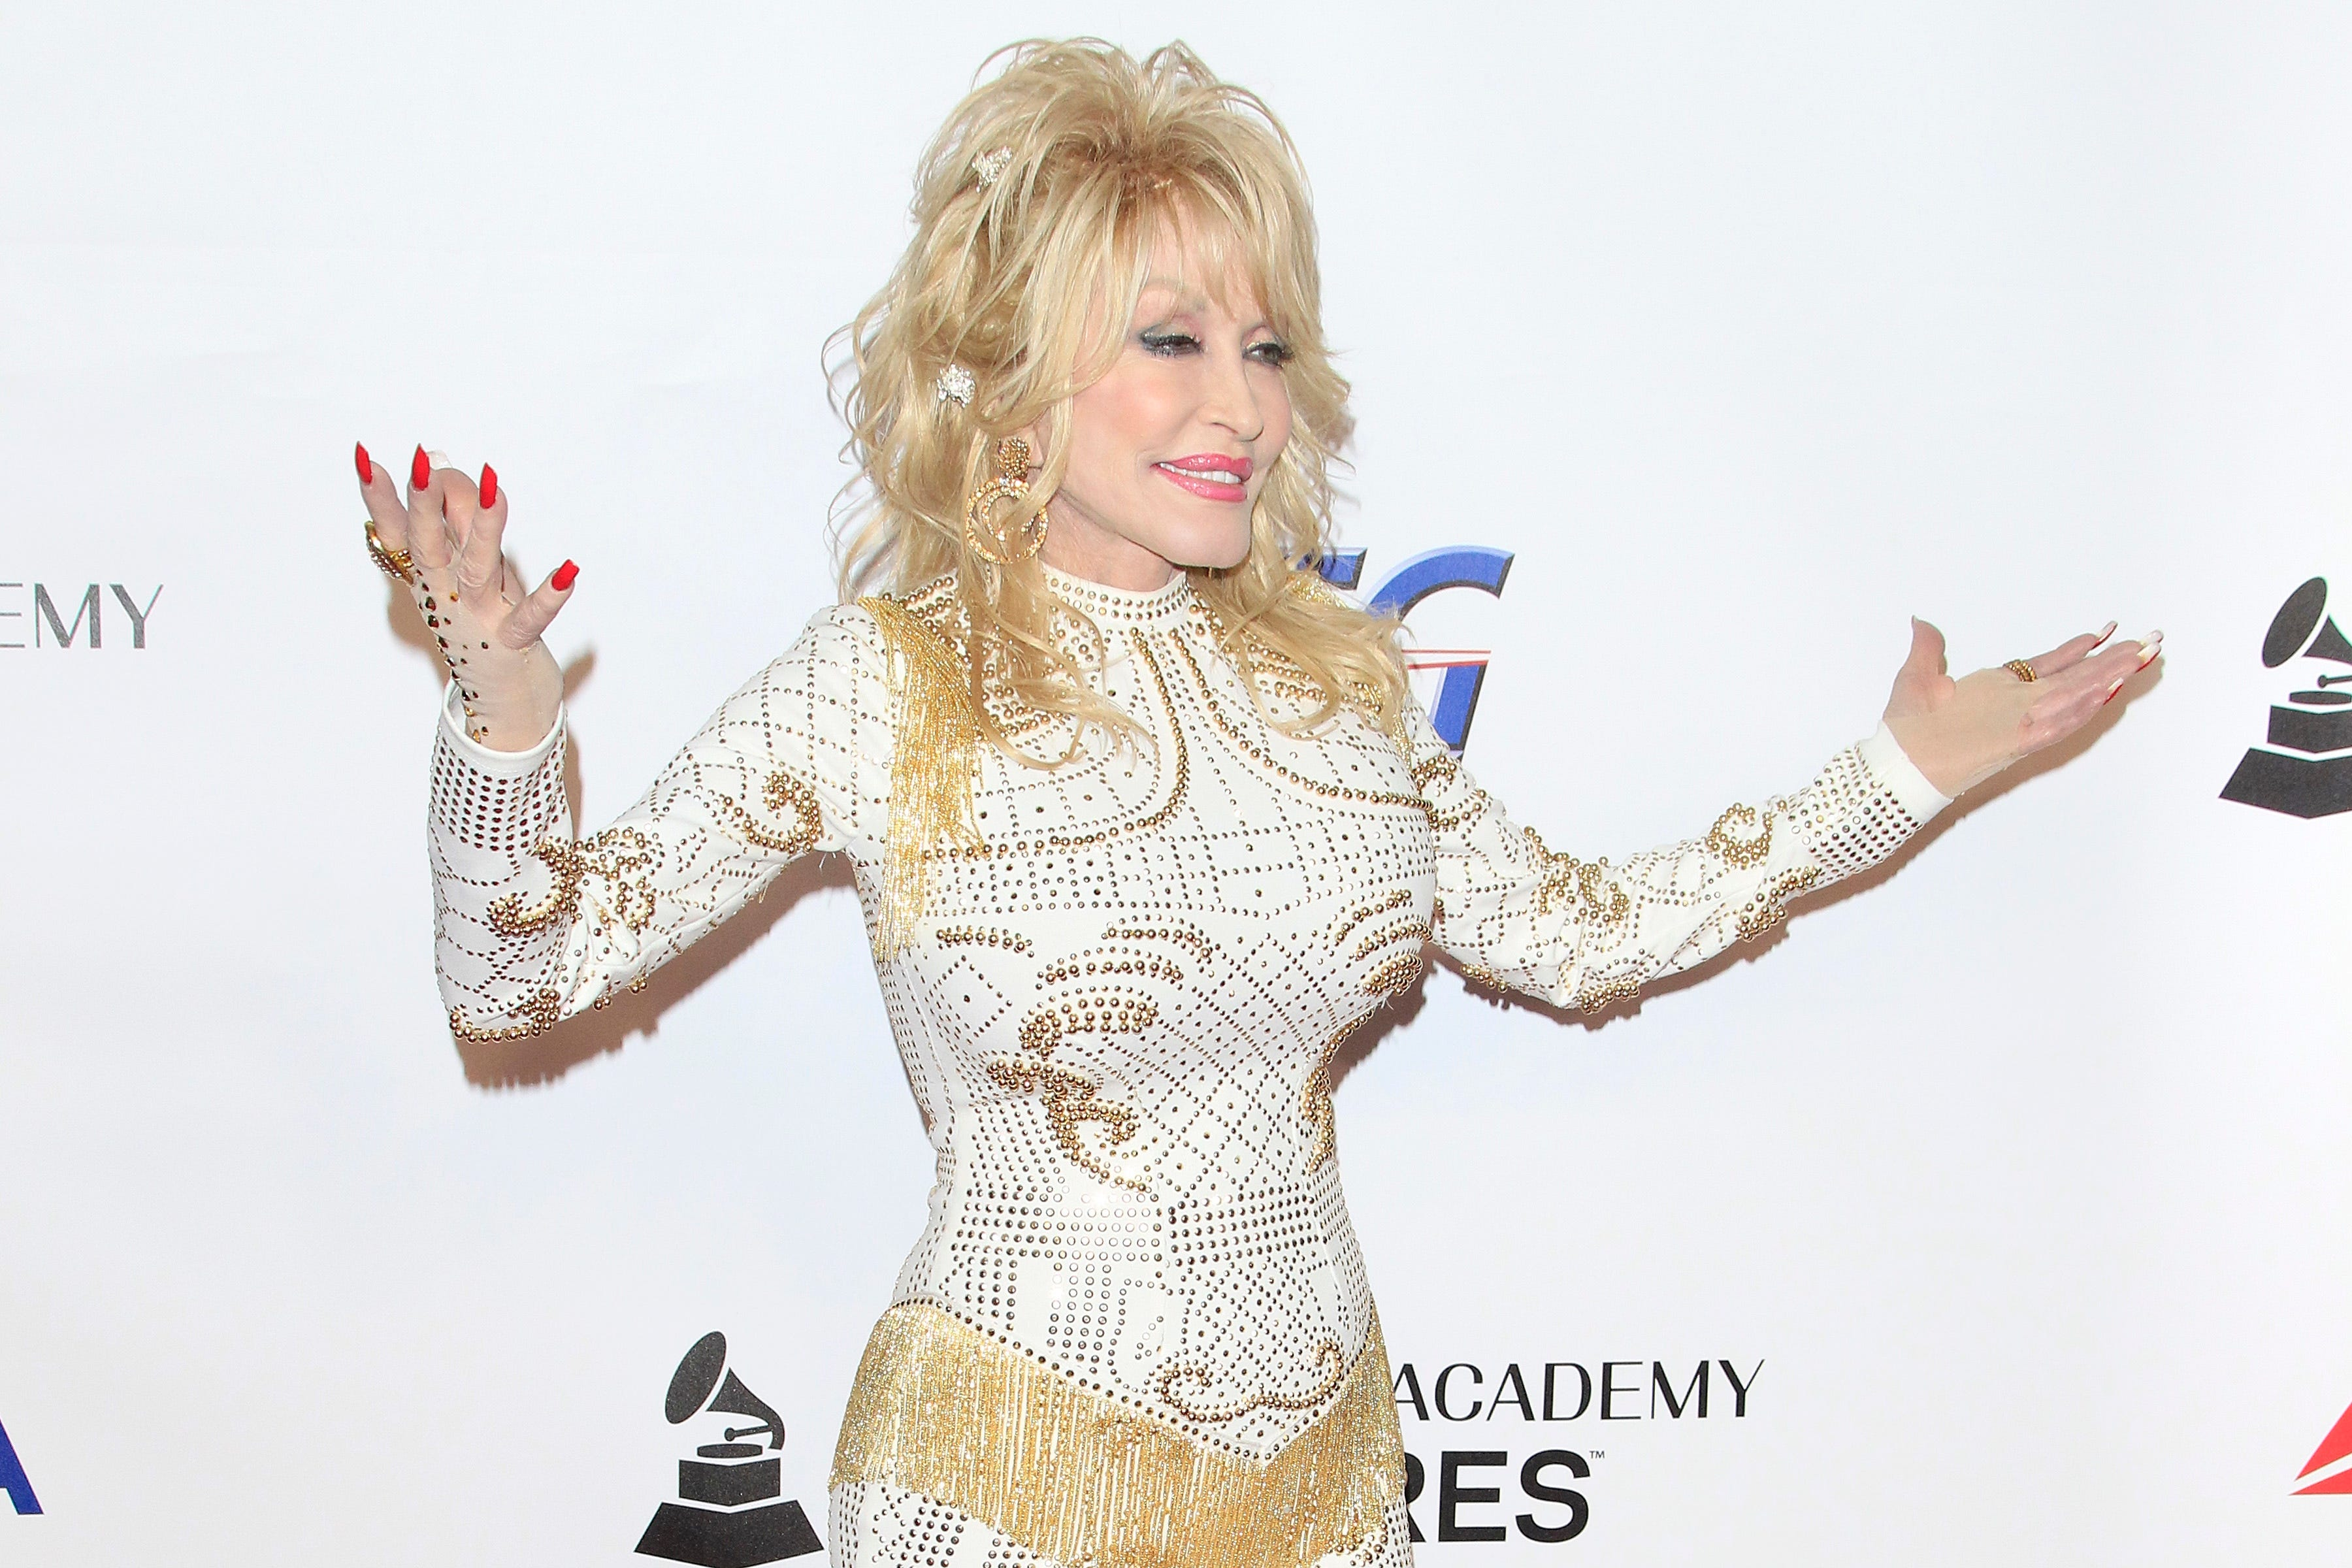 MusiCares 2019 Person of the Year: Dolly Parton is first country singer honored after lifetime of music